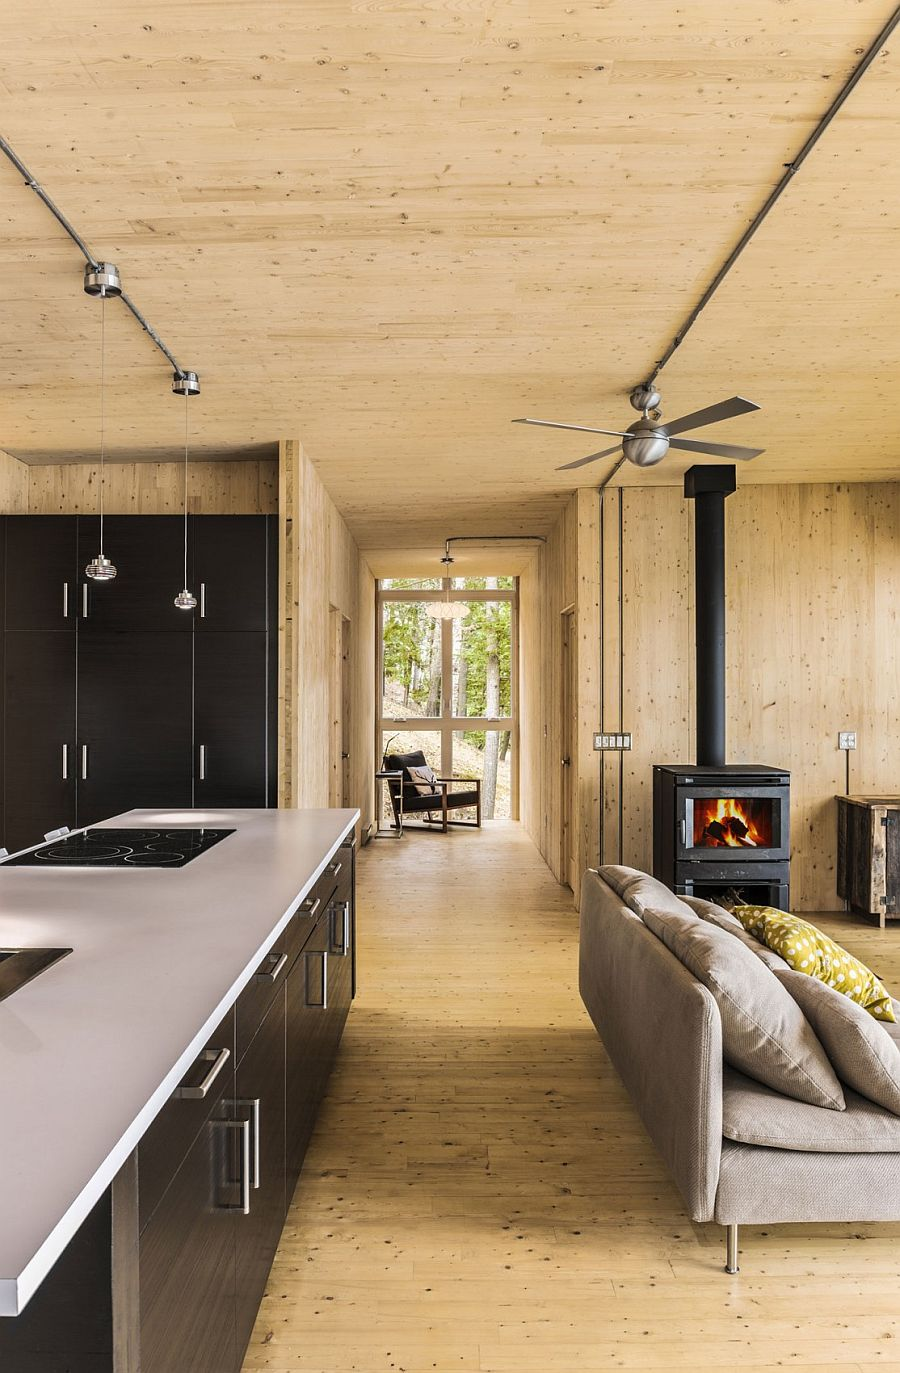 Black brings elegance and visual contrast to the kitchen